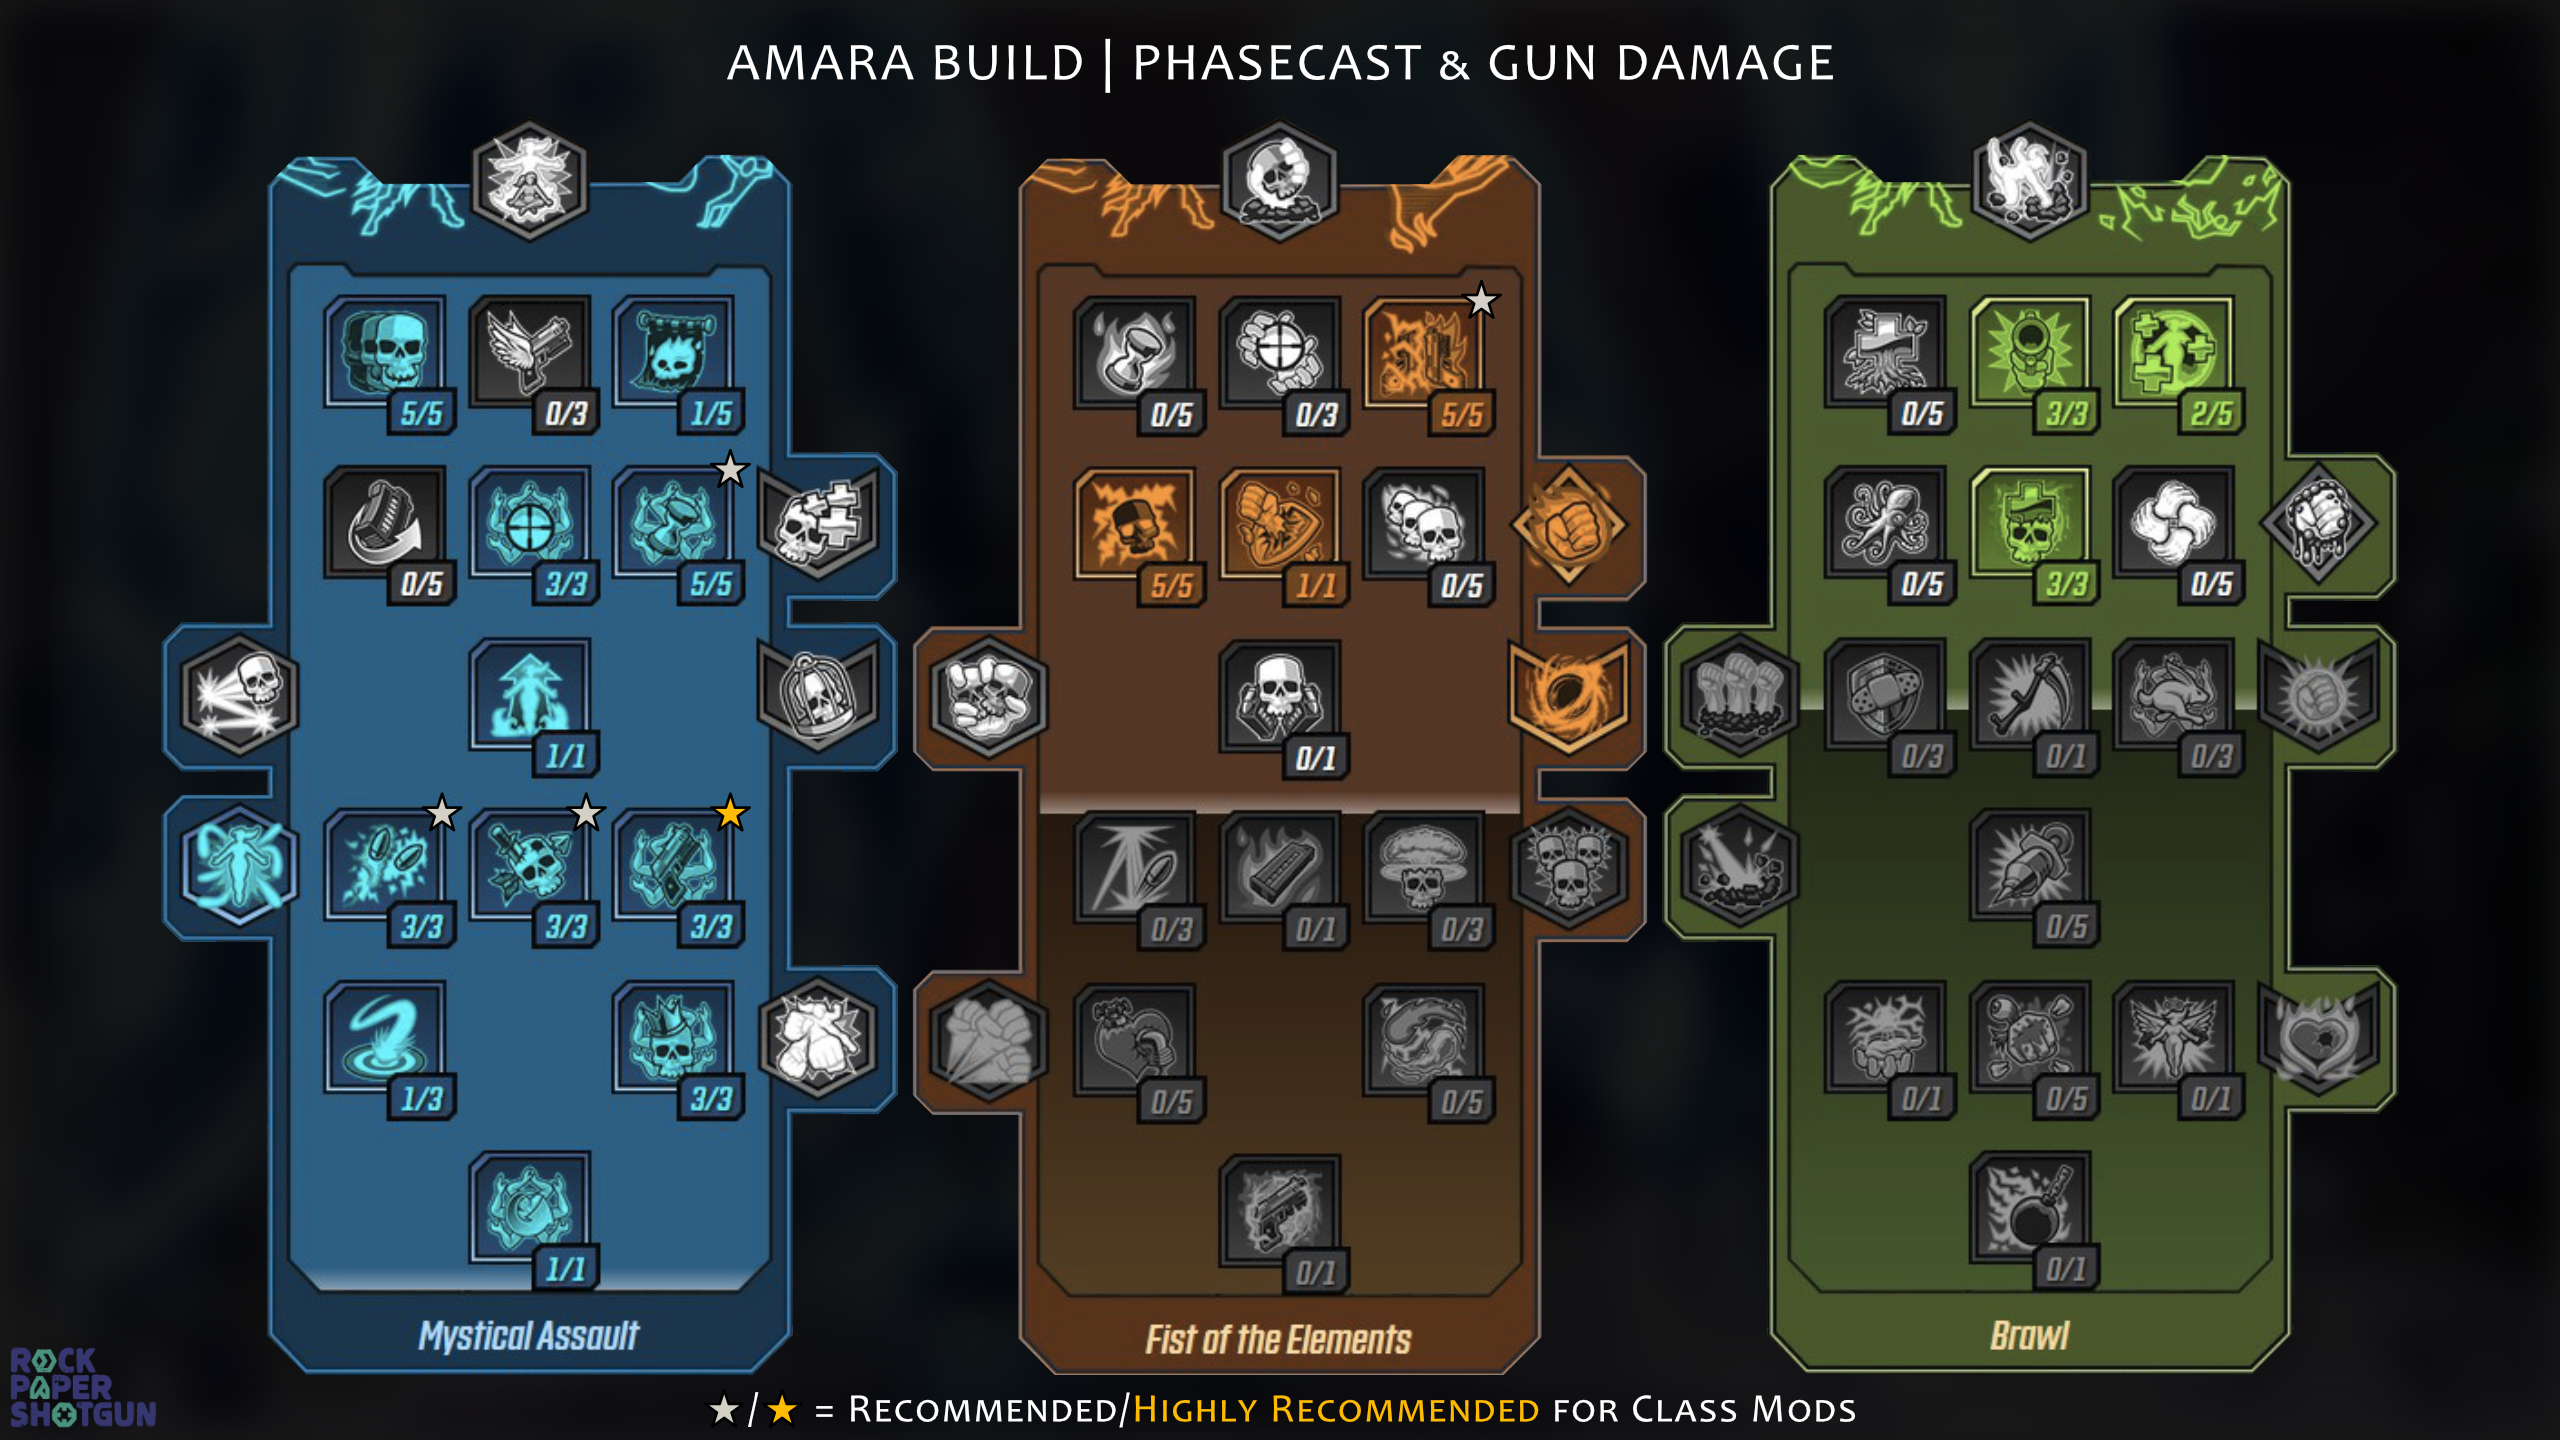 Borderlands 3 Amara build - Phasecast & Gun Damage